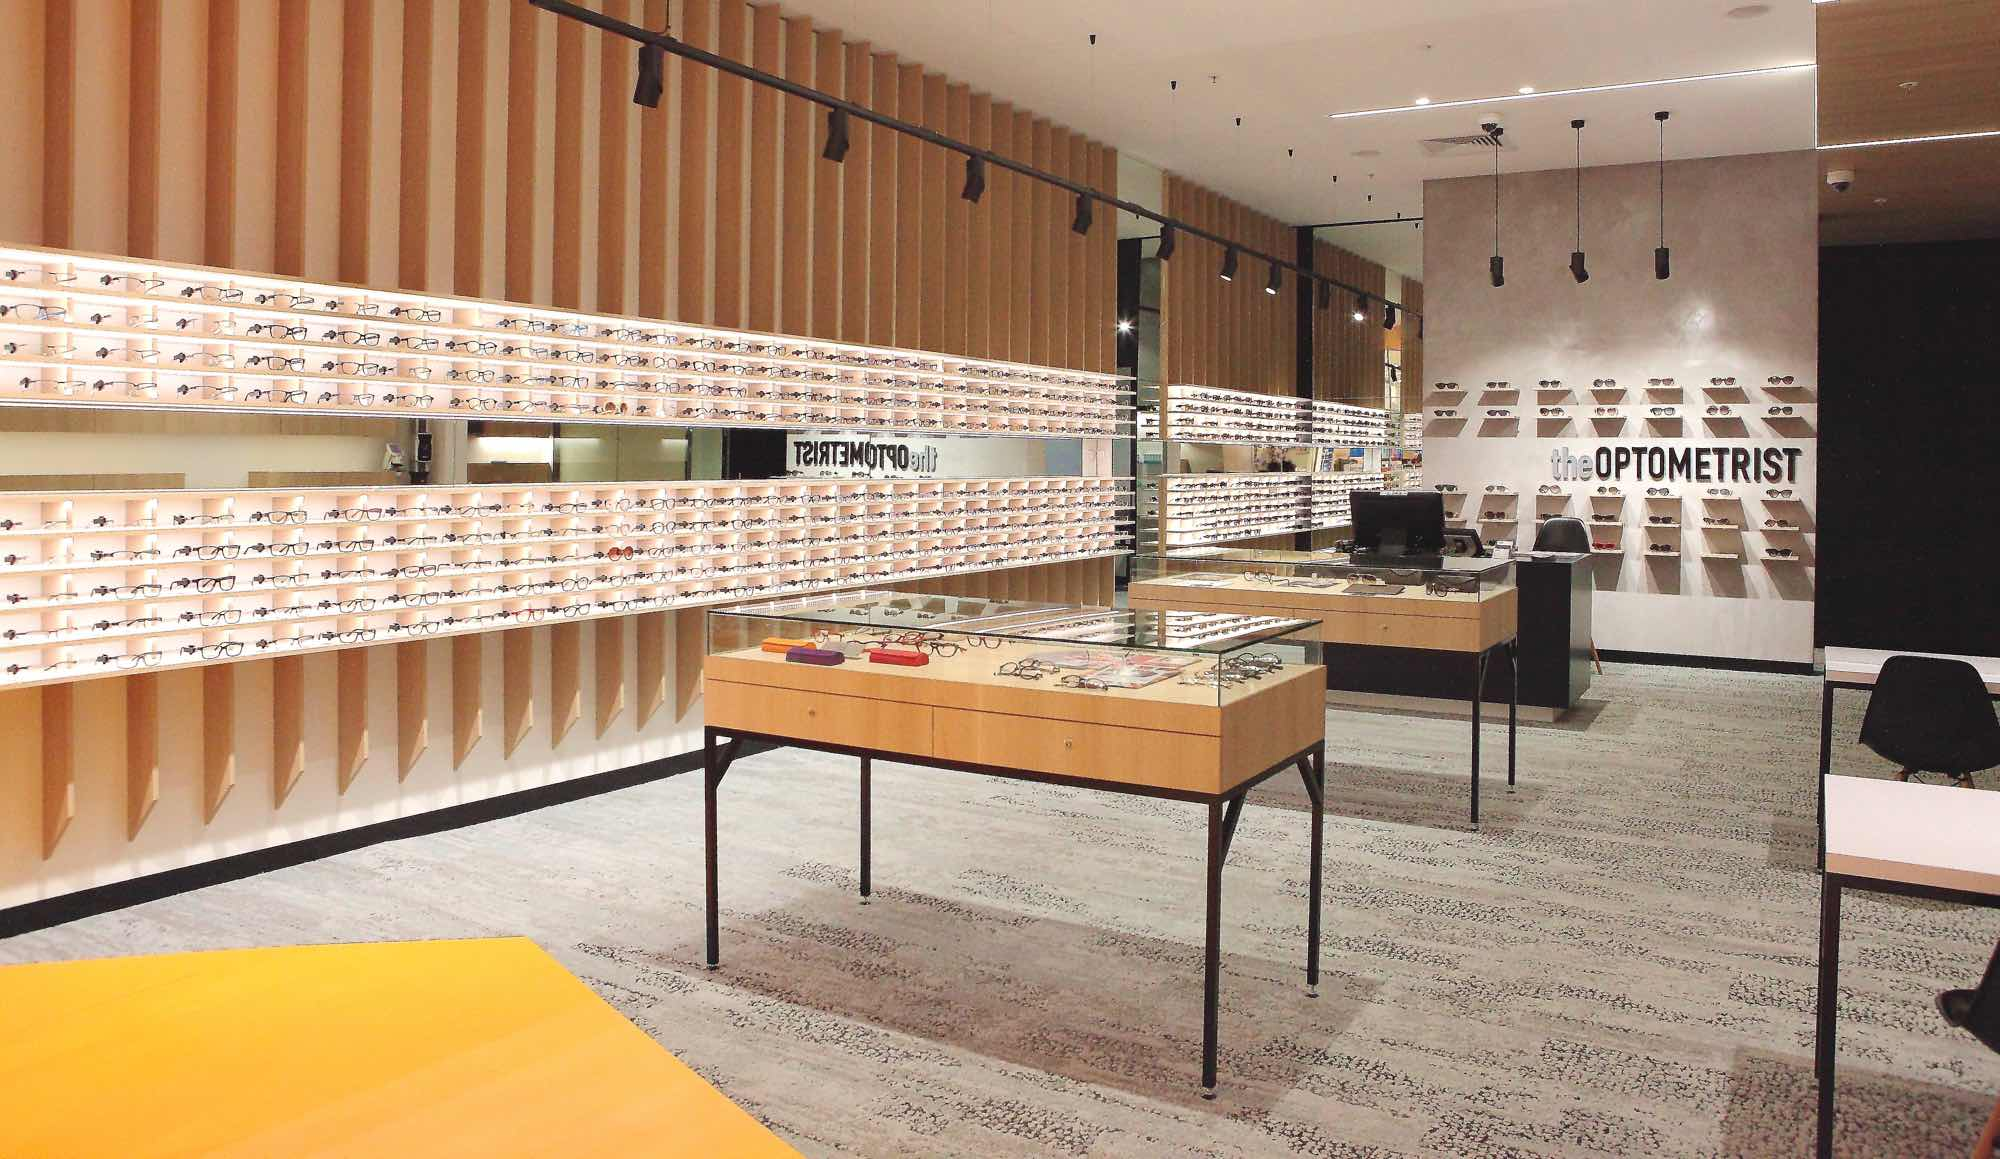 The Optometrist Interior Store Image